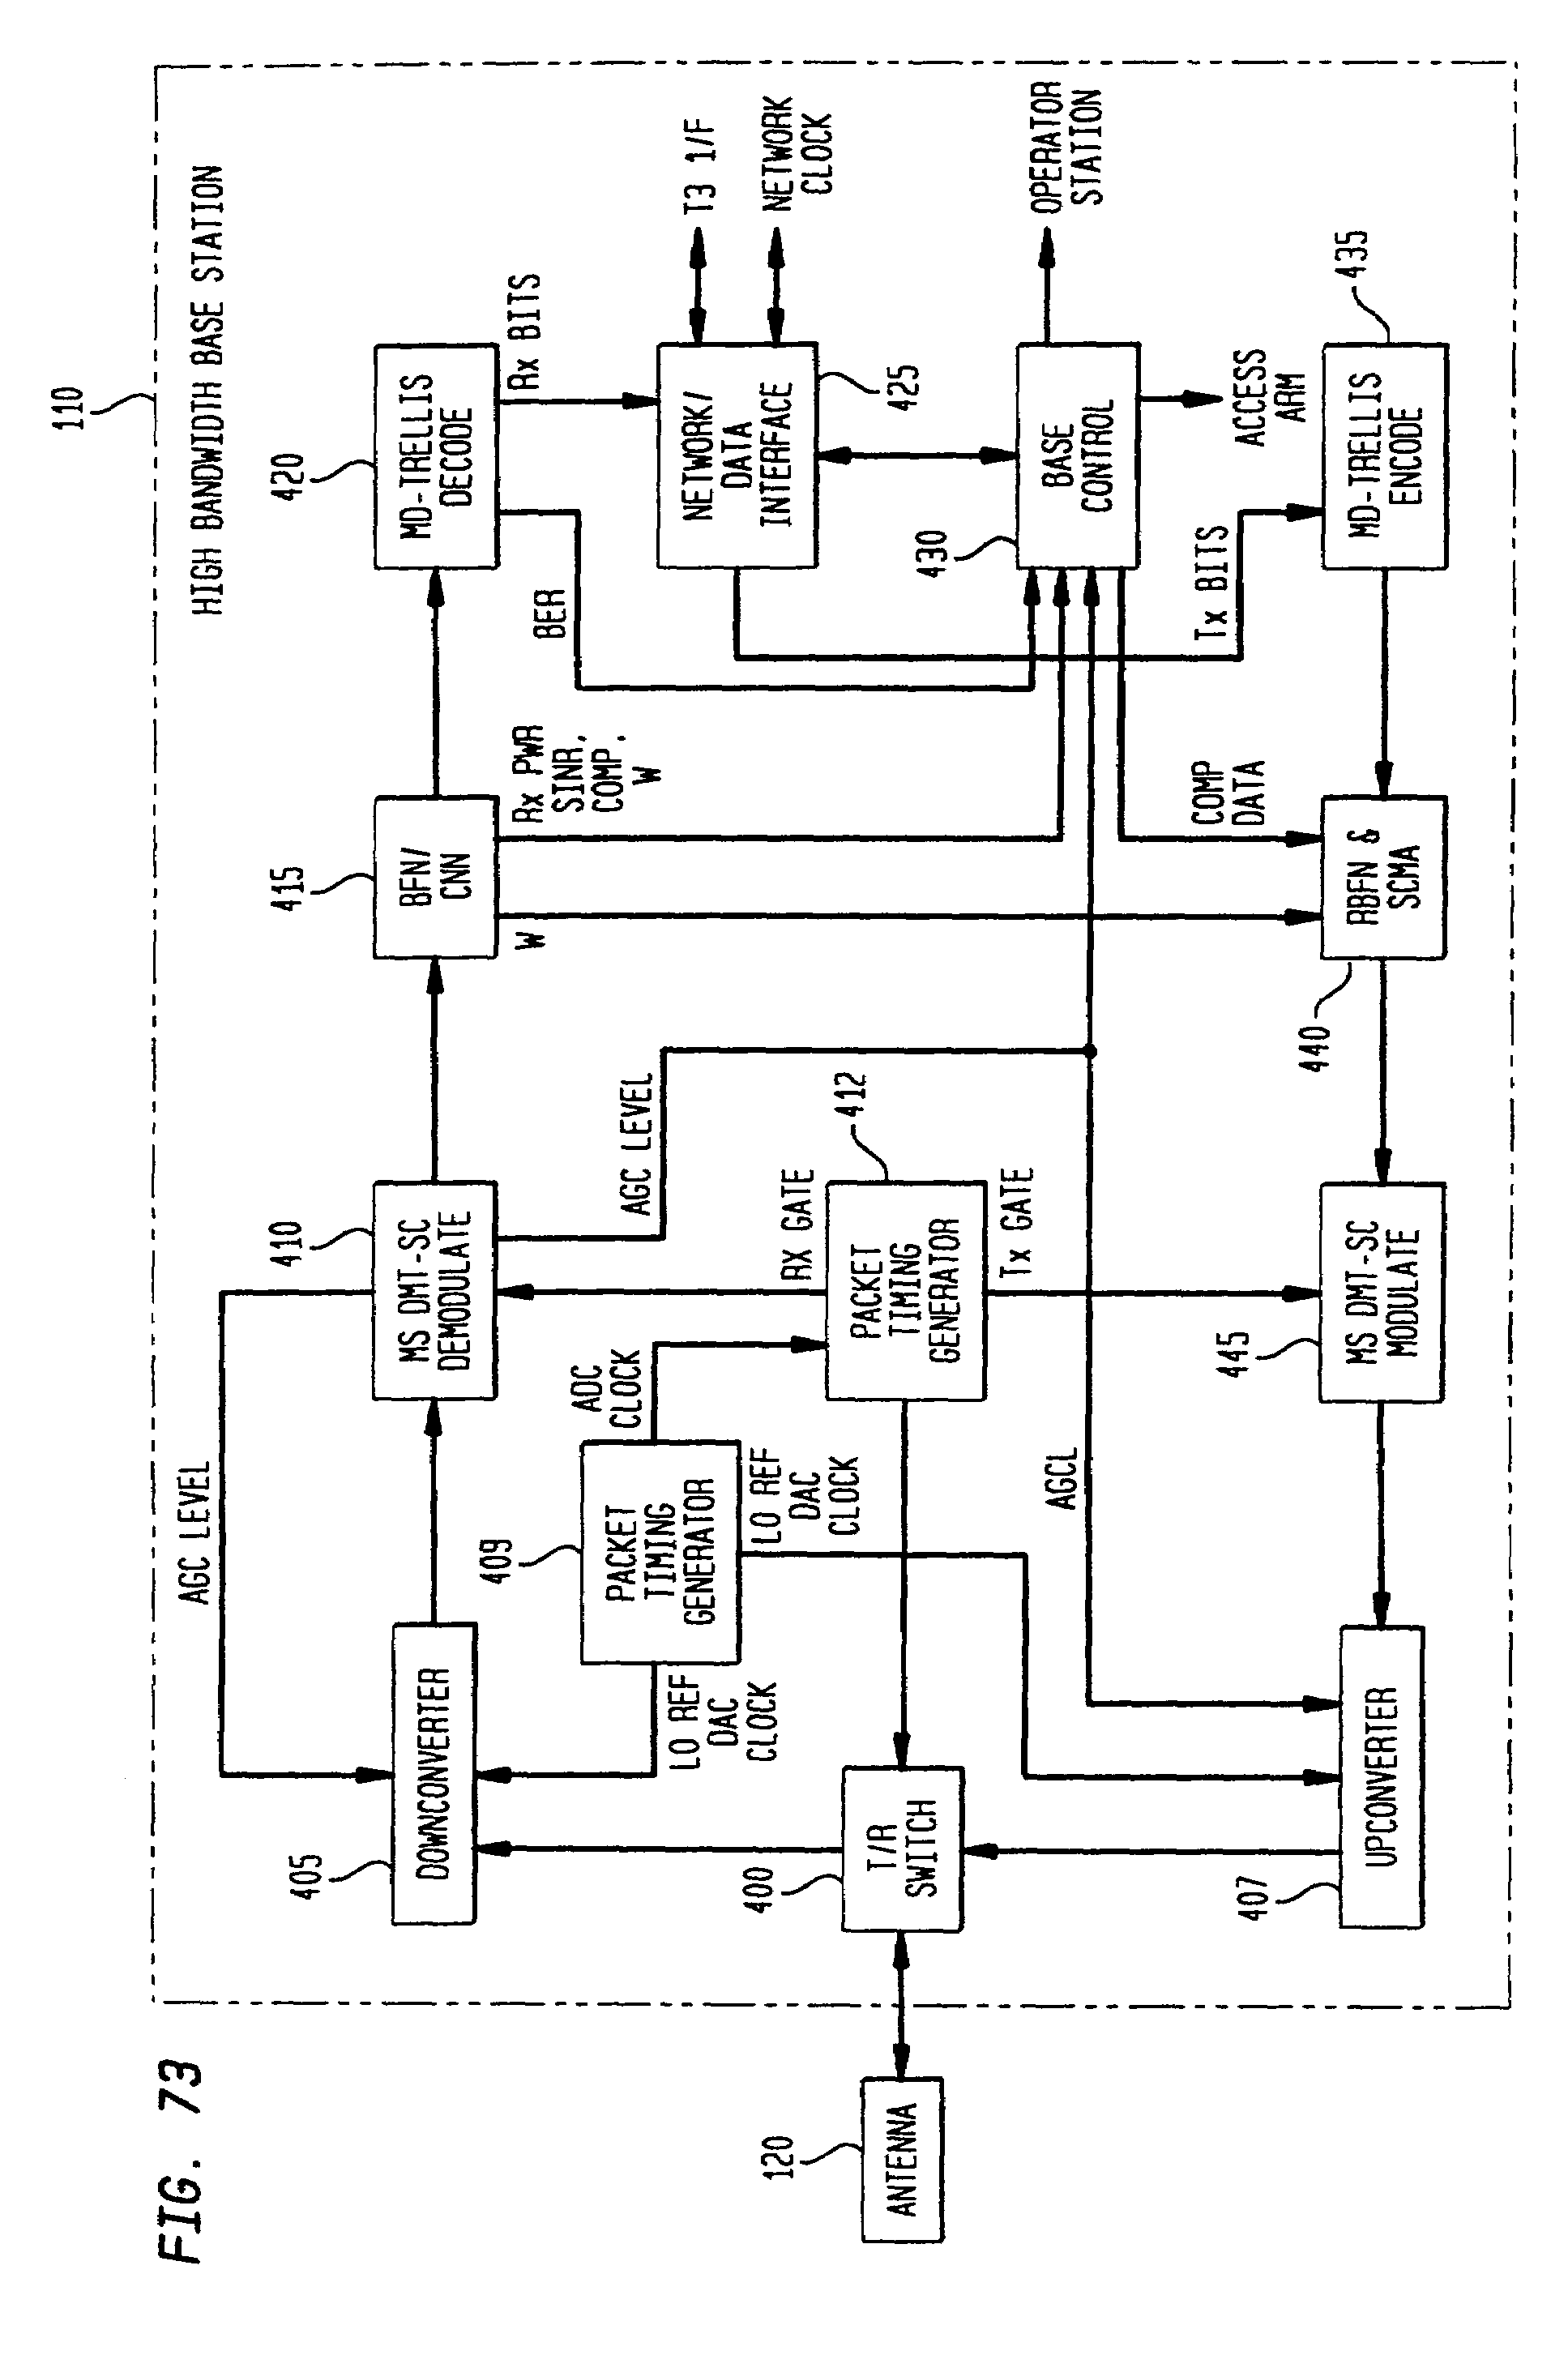 Patent Us 7106781 B2 Multitone Generator Door Bell Circuit Images